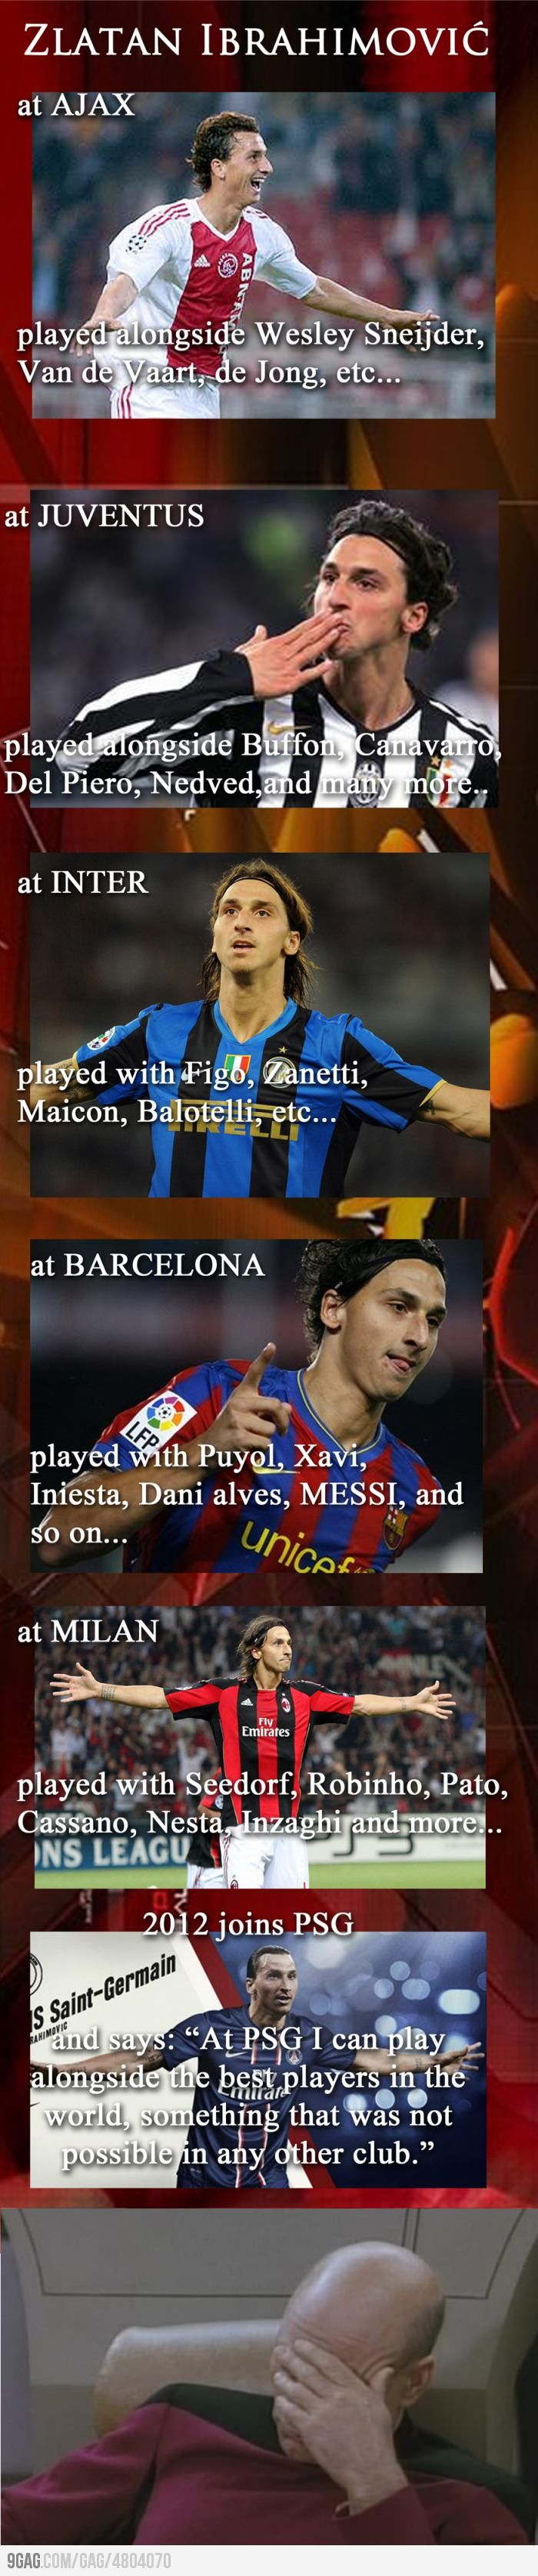 Zlatan Ibrahimovic.. Seriously?!